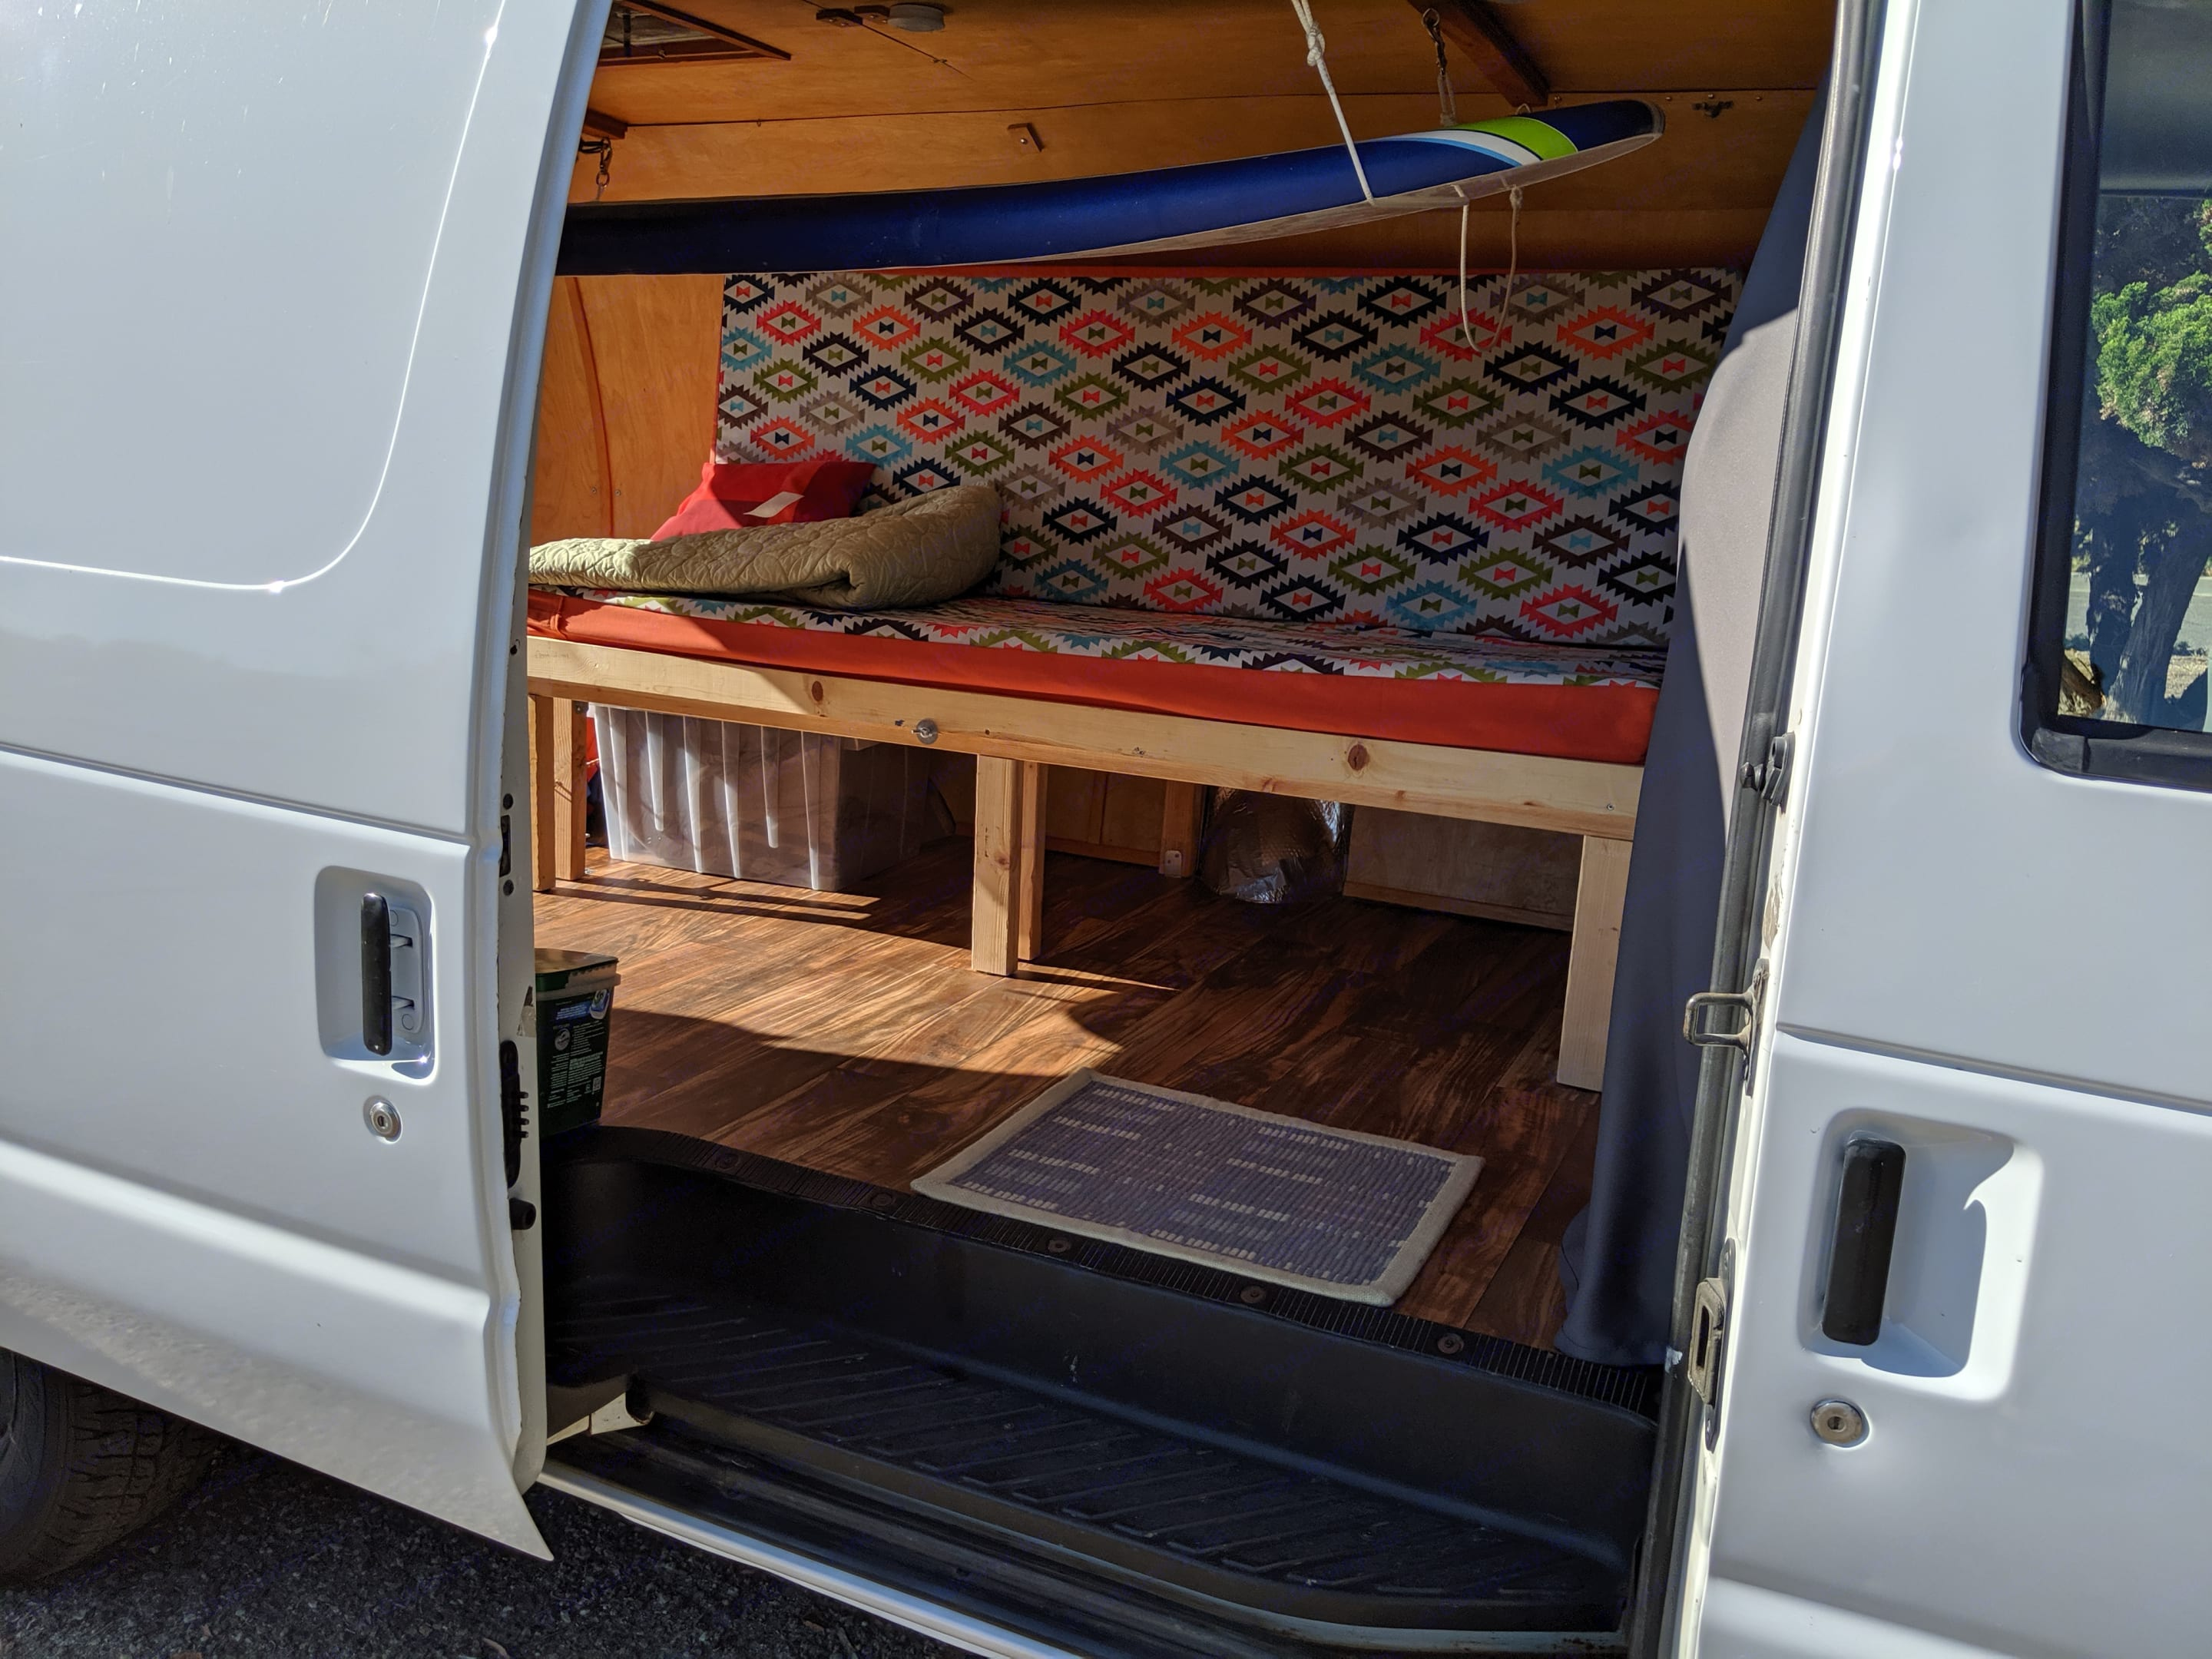 Bed in couch configuration. Surfboards can be securely hanged inside for quick loading/unloading.. Ford Econoline 150 2006